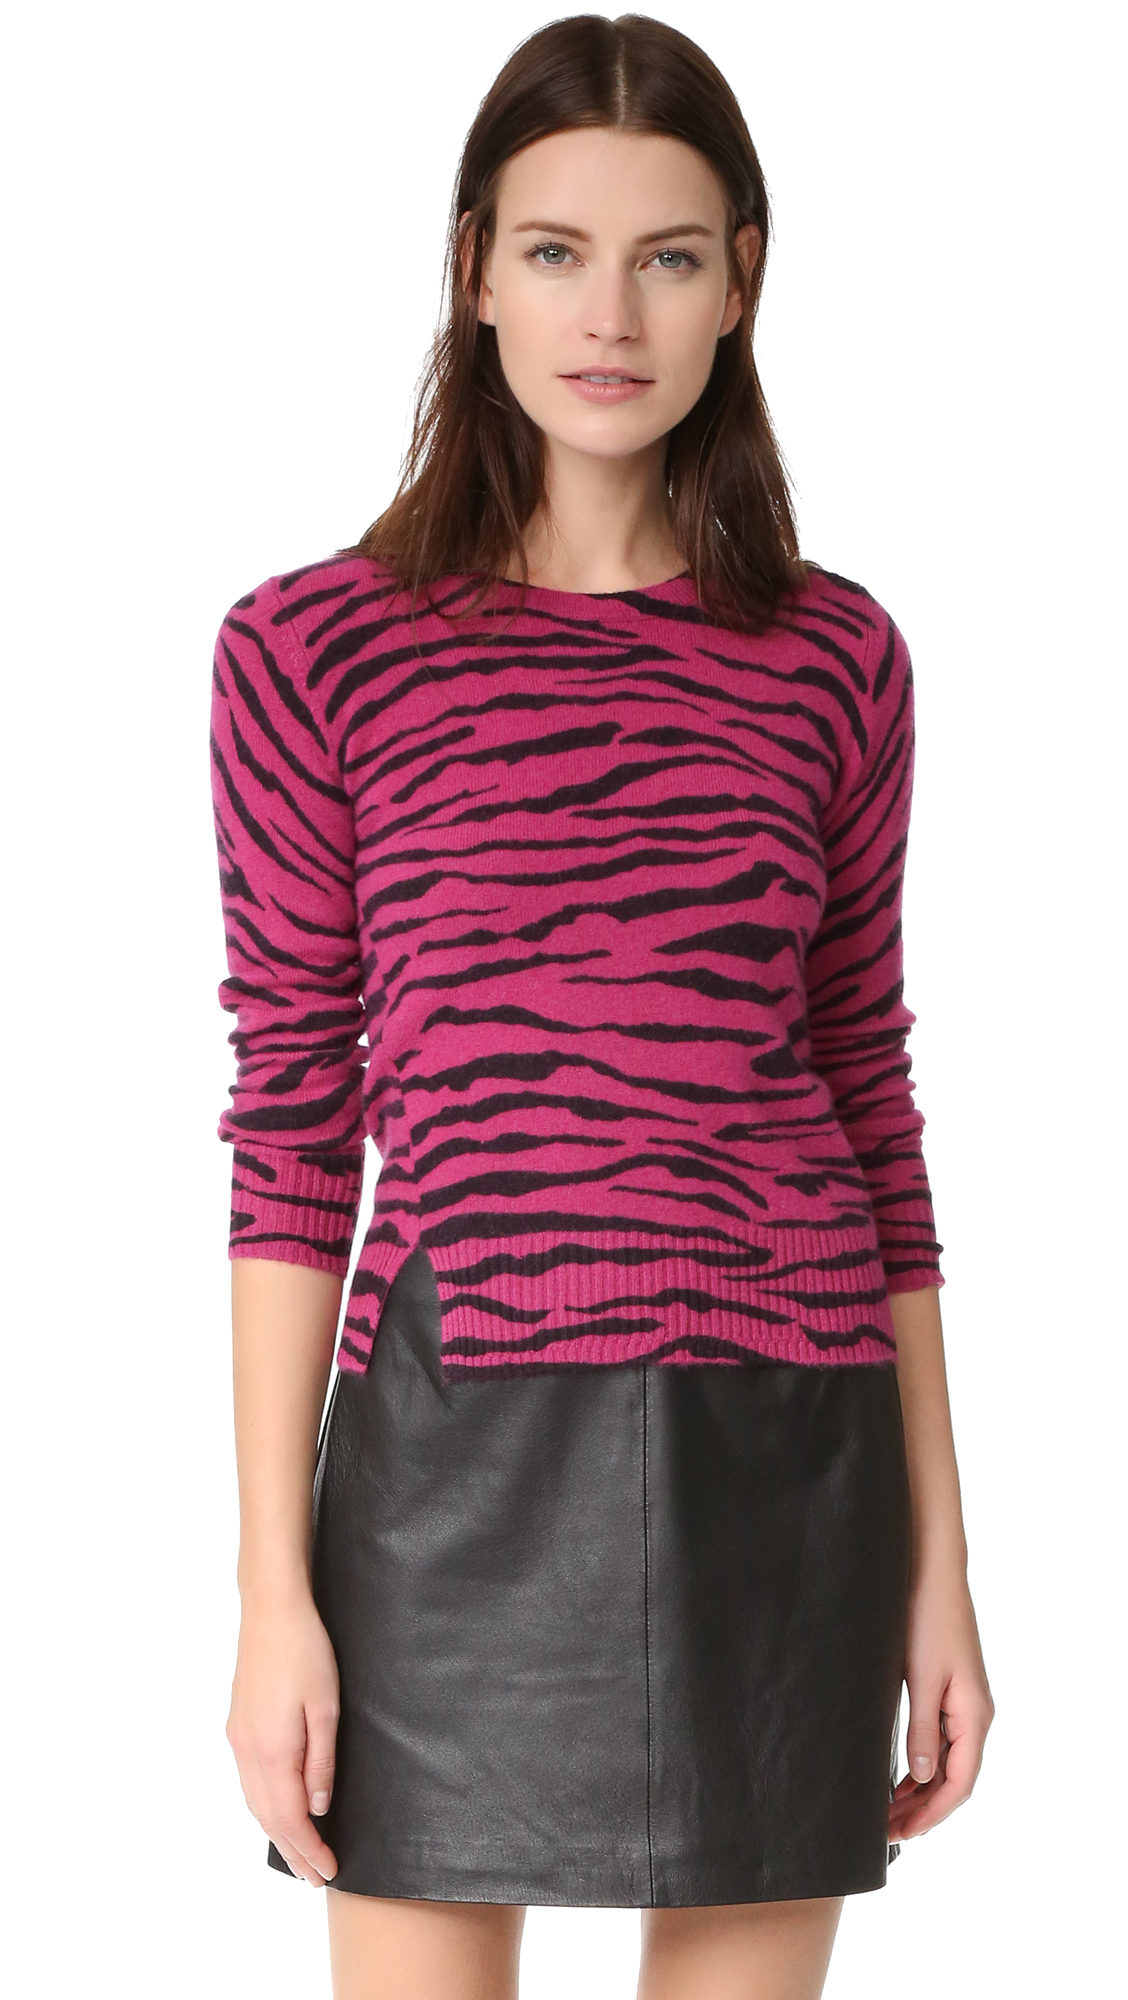 marc jacobs female marc jacobs tiger stripe cashmere sweater pink multi